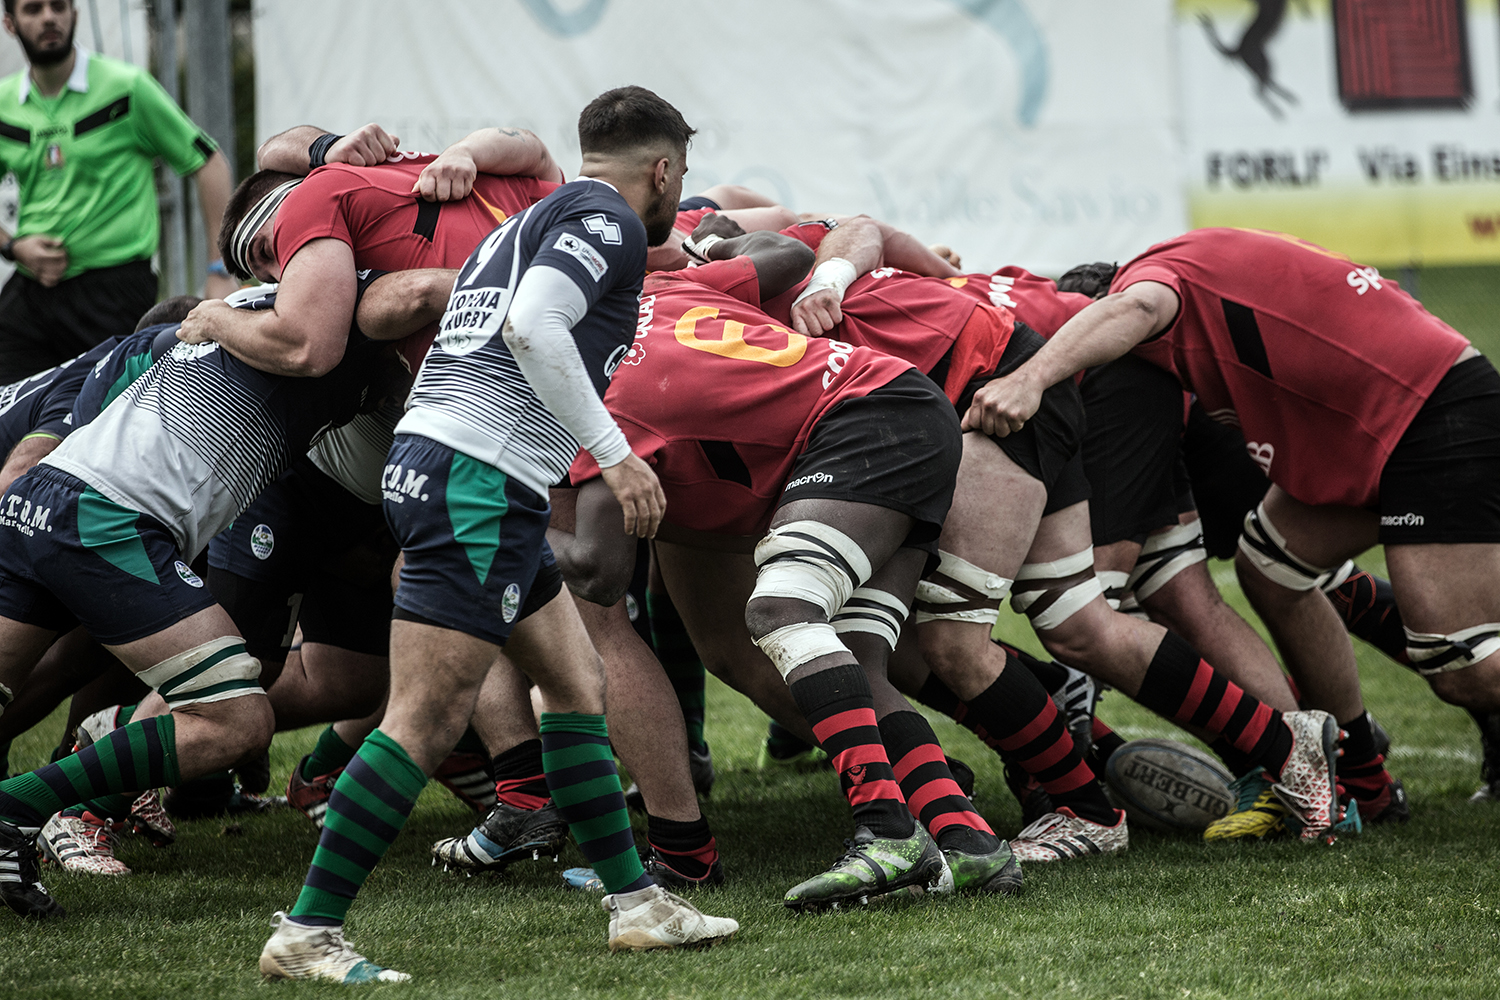 rugby_photograph_08.jpg